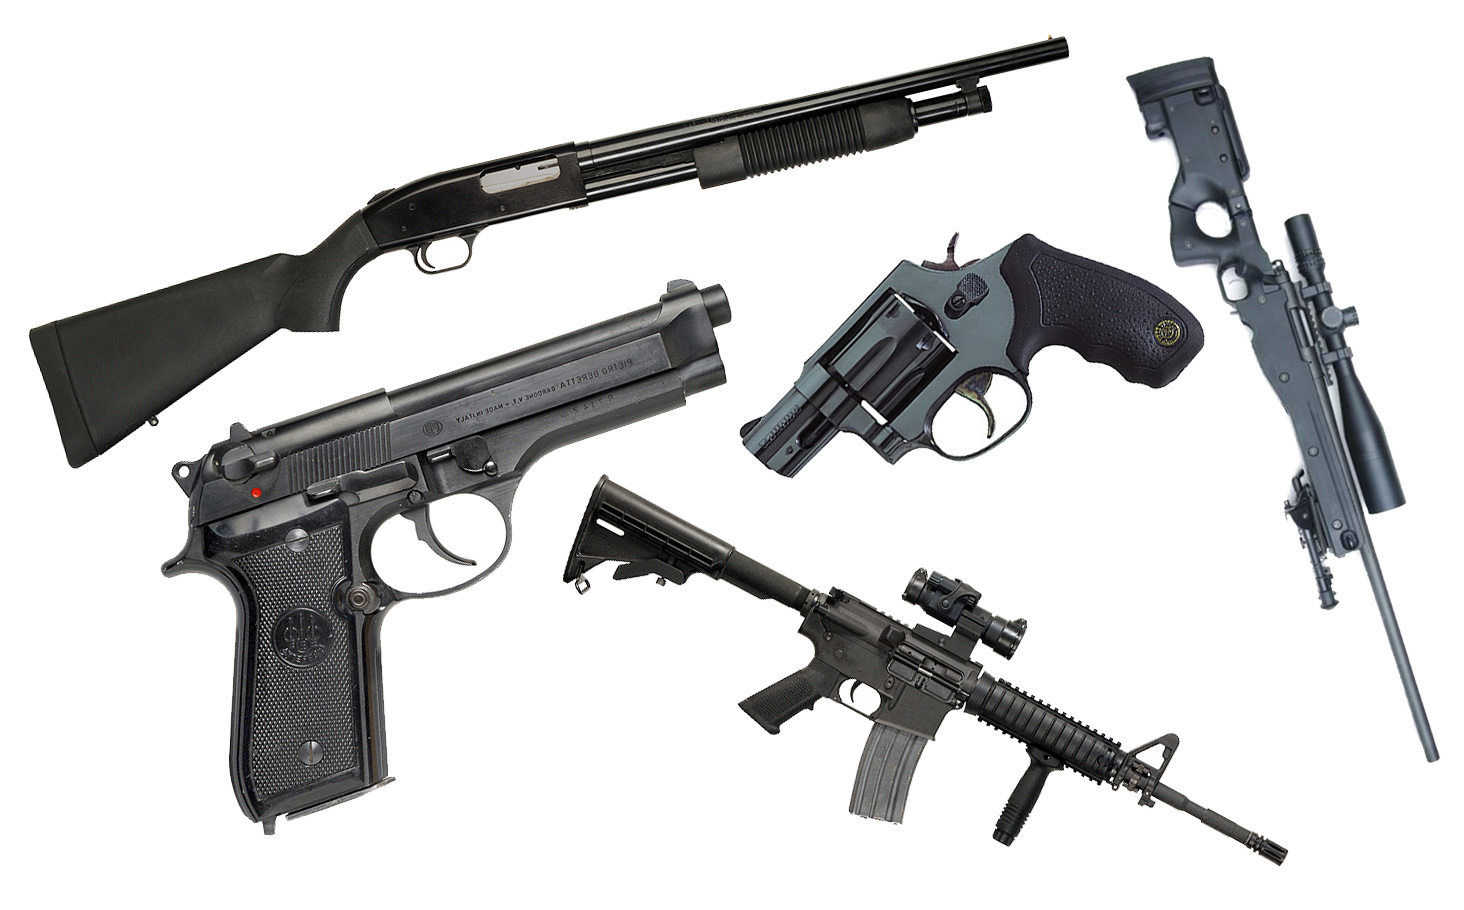 Hasil gambar untuk Tips On Choosing a Rifle For Beginners